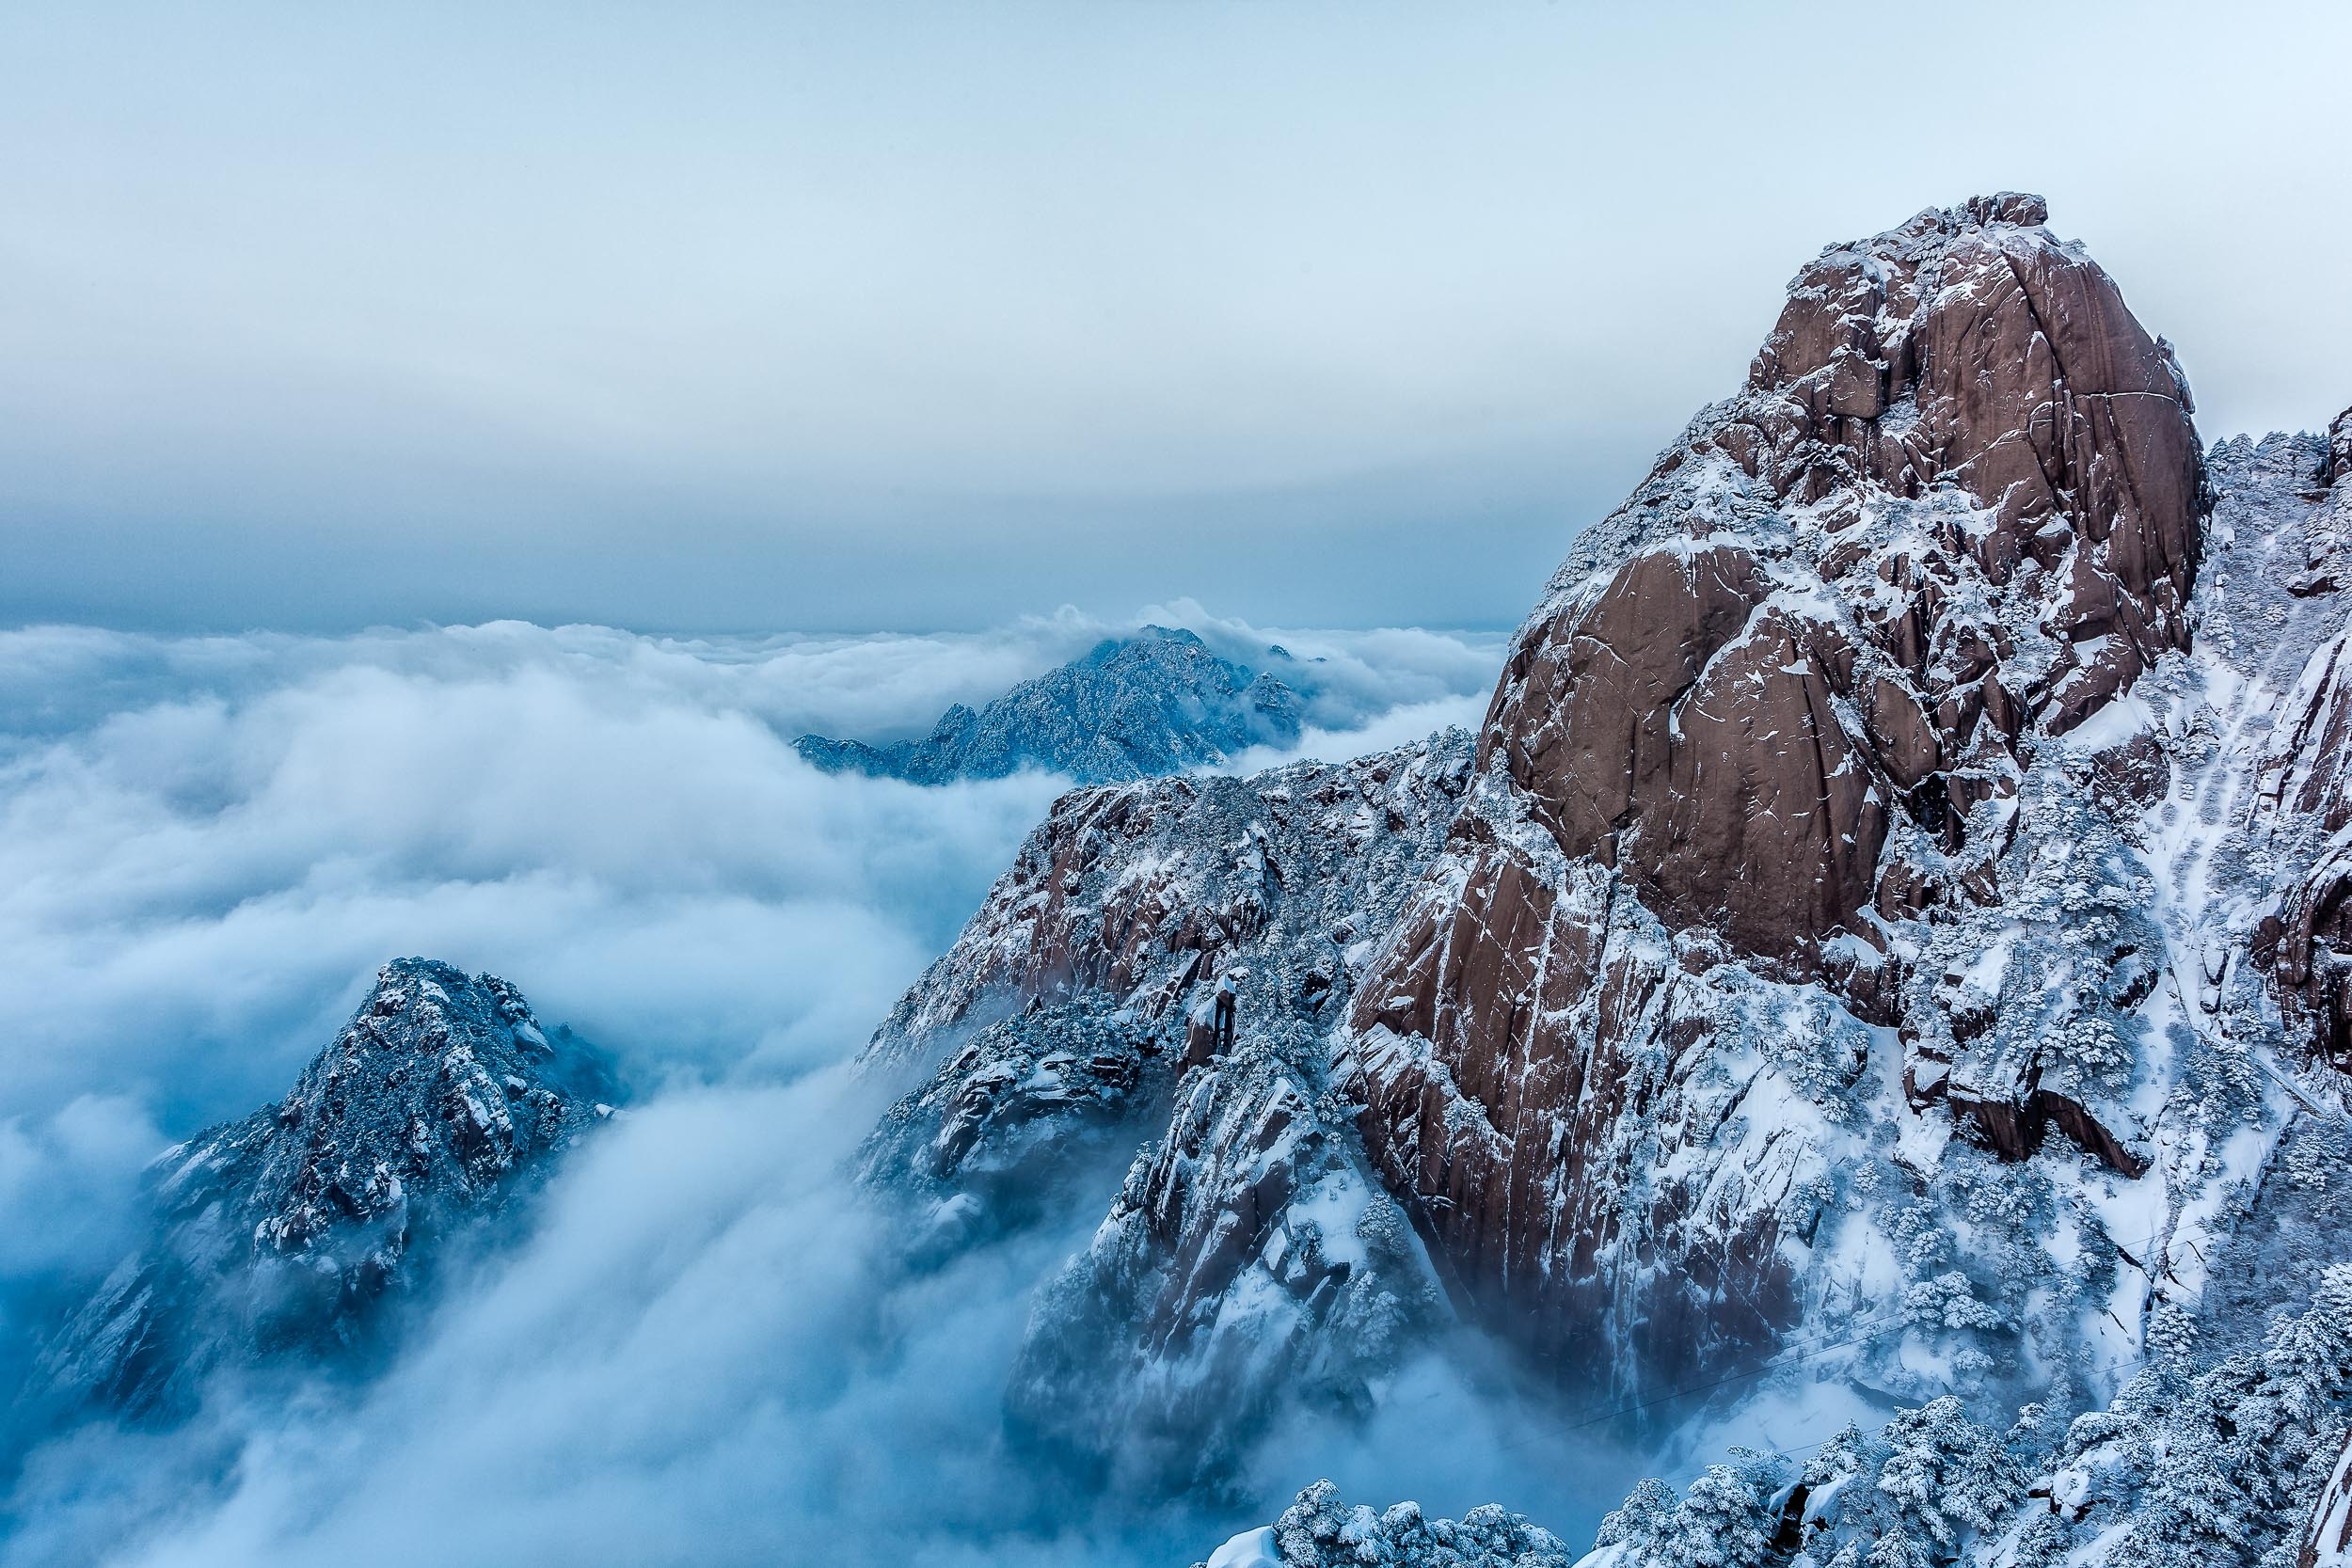 A sublime view , early in the morning,  above the clouds on Huangshan  (i.e., Yellow Mountain), China.